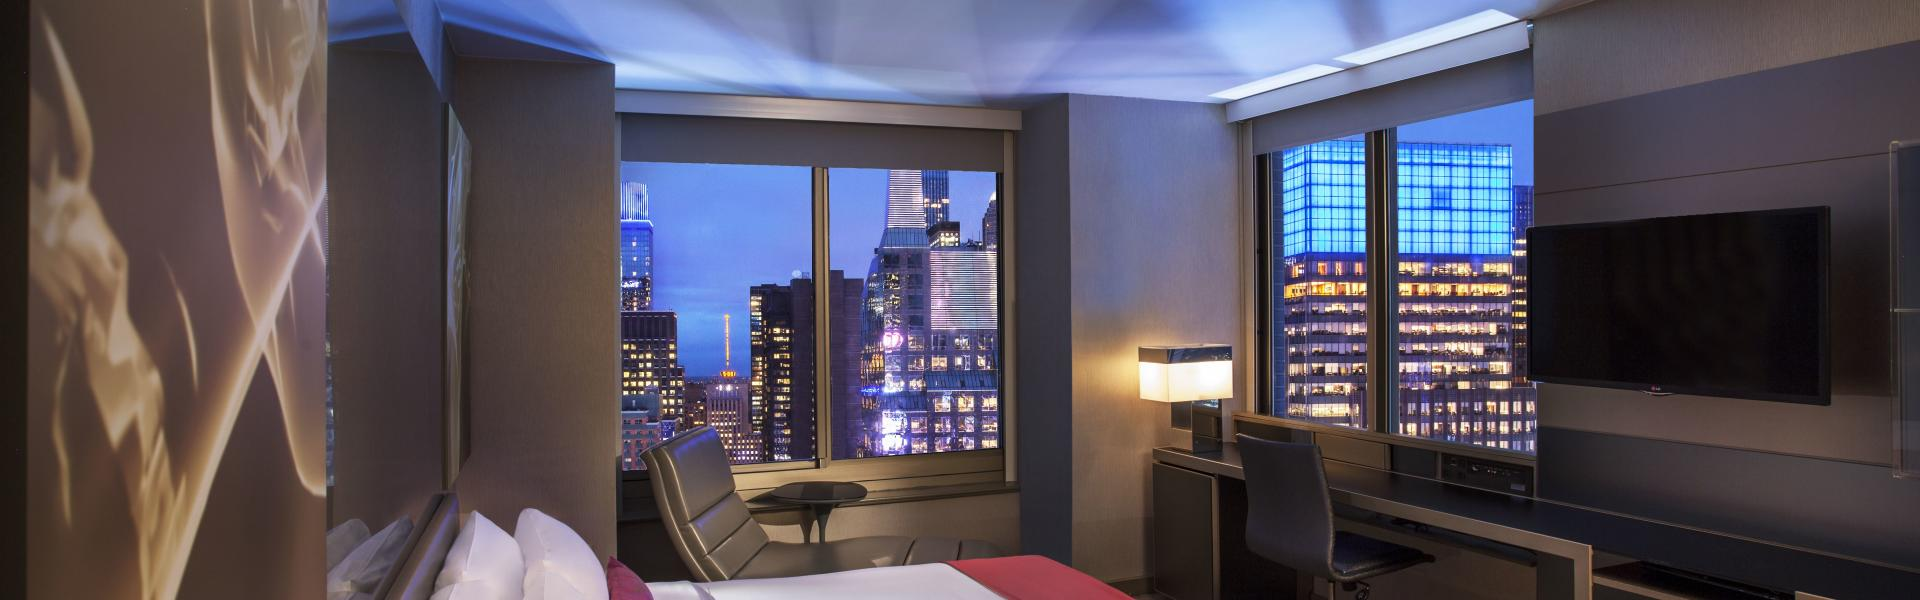 W-New-York-TimesSquare-Times-Square-Manhattan-NYC-StarwoodHotelsandResortsWorldwideInc